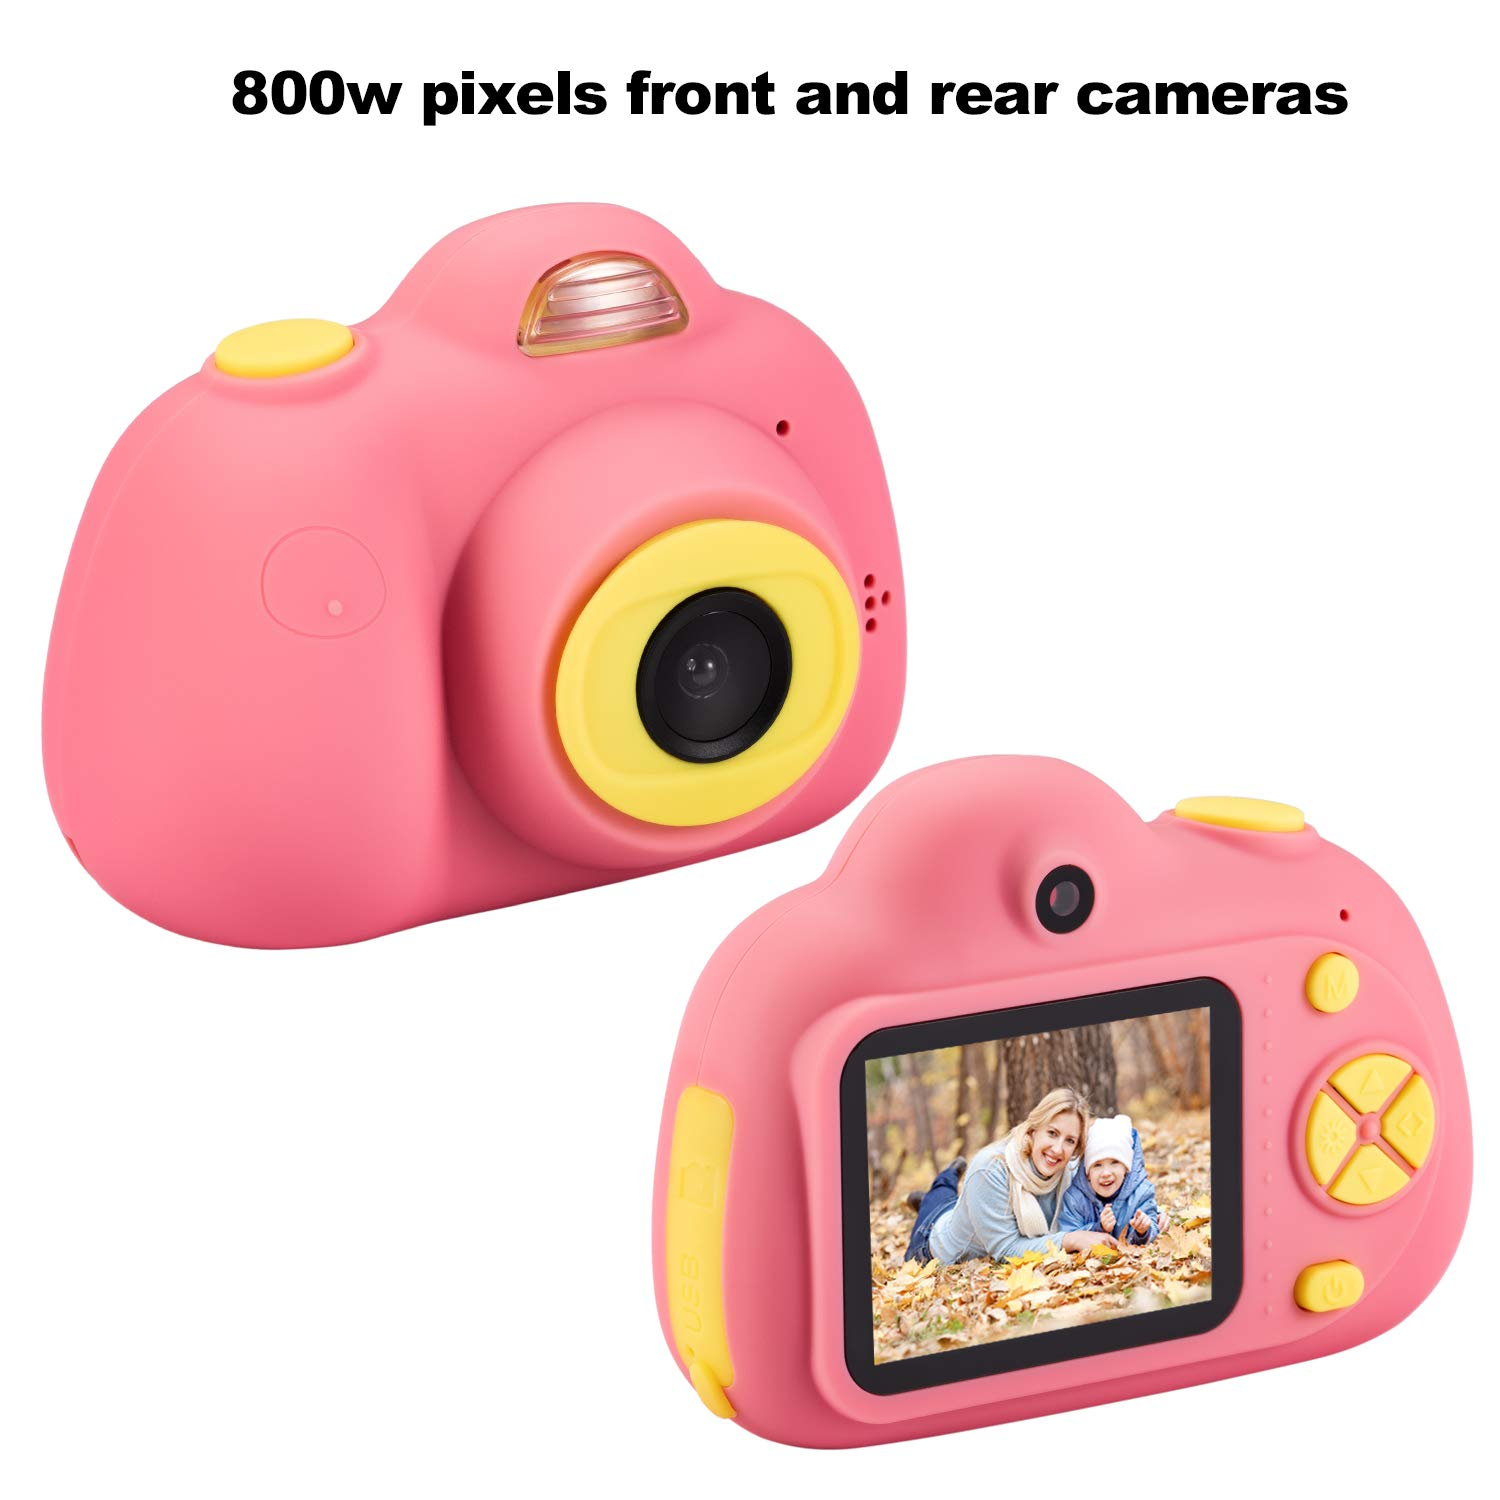 omzer Gift Kids Camera Toys for Girls, Cute Children Cameras Mini Camcorder for 3-8 Years Old Girl with 8MP HD Video Lens Great for Shooting, Deep Pink(16GB Memory Card Included) by omzer (Image #2)